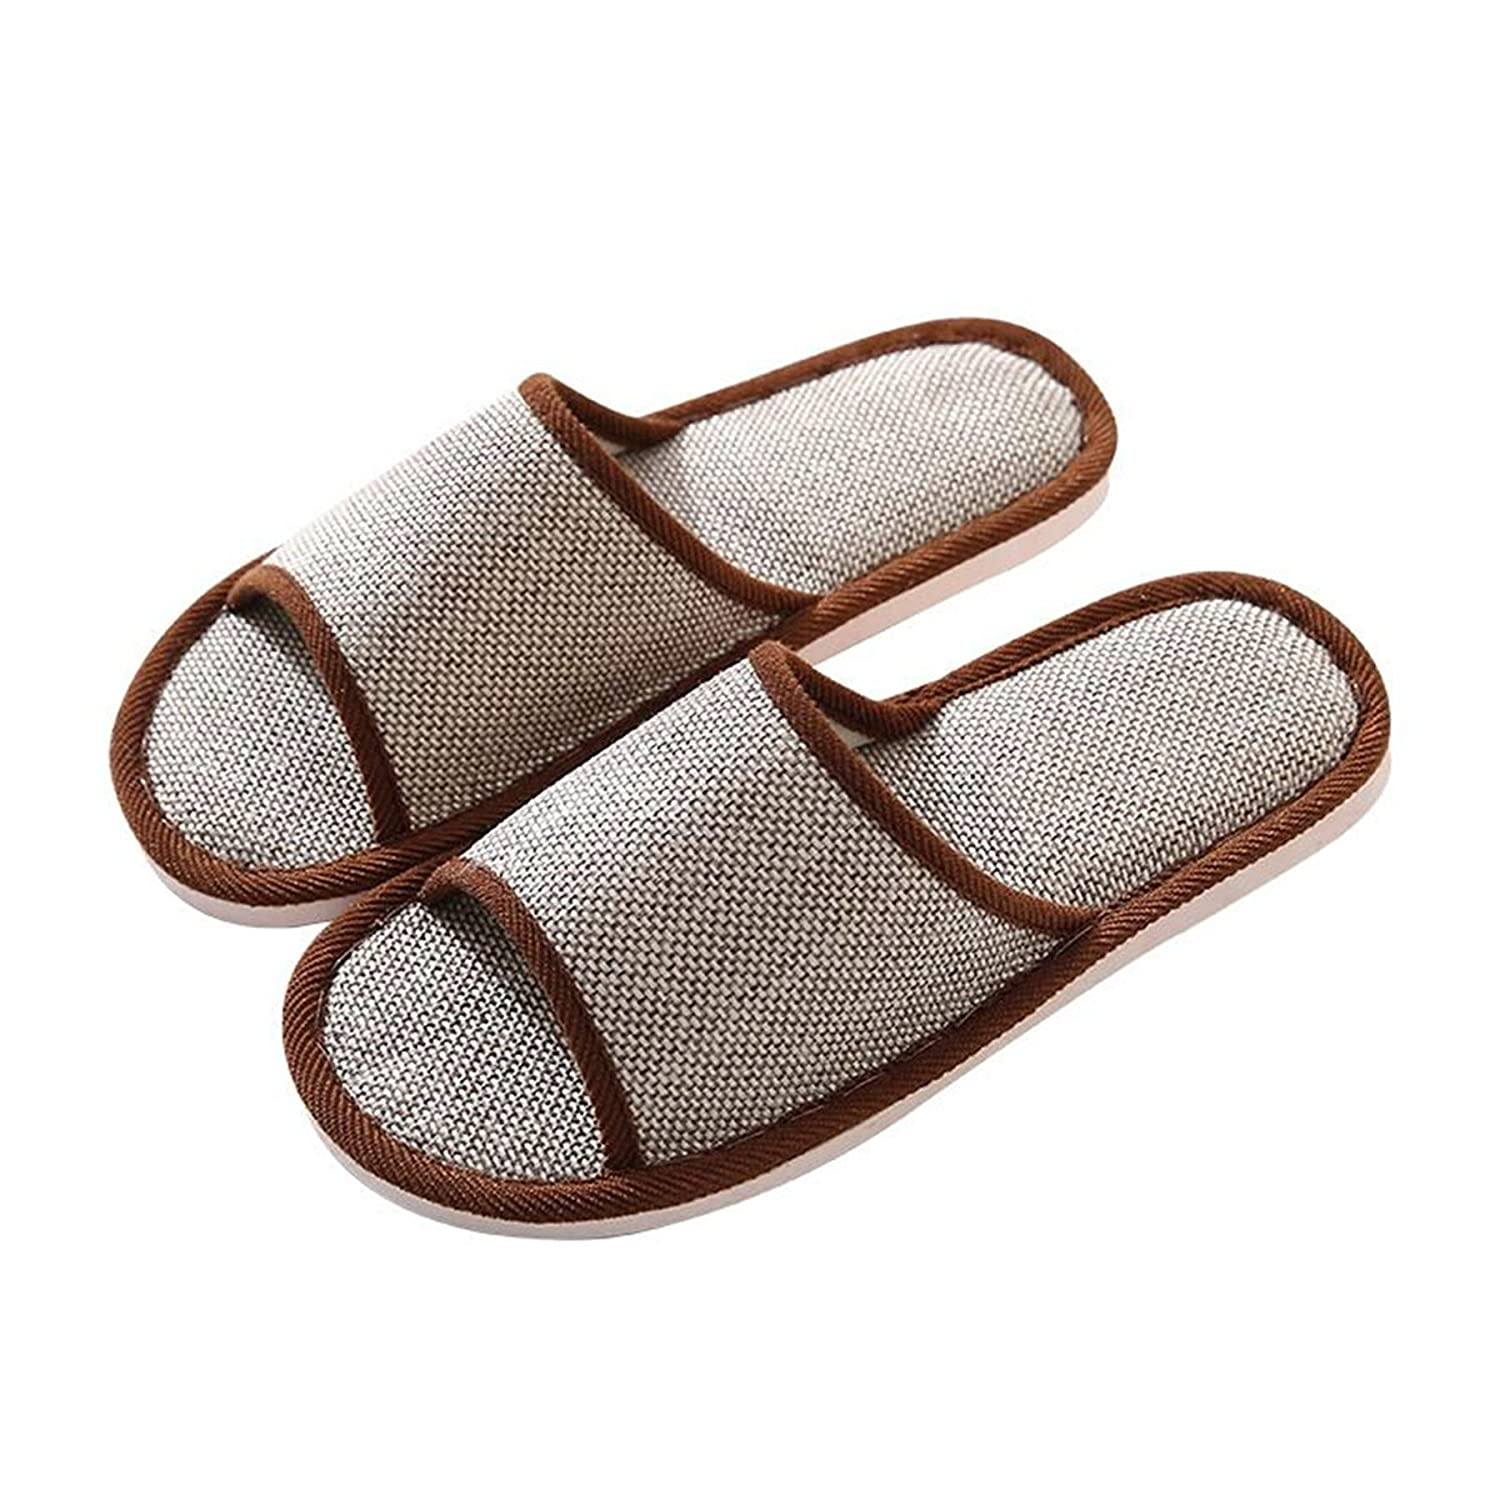 2 Be super welcome Pairs Spa Slippers Universal Toe Women Size Las Vegas Mall for Open